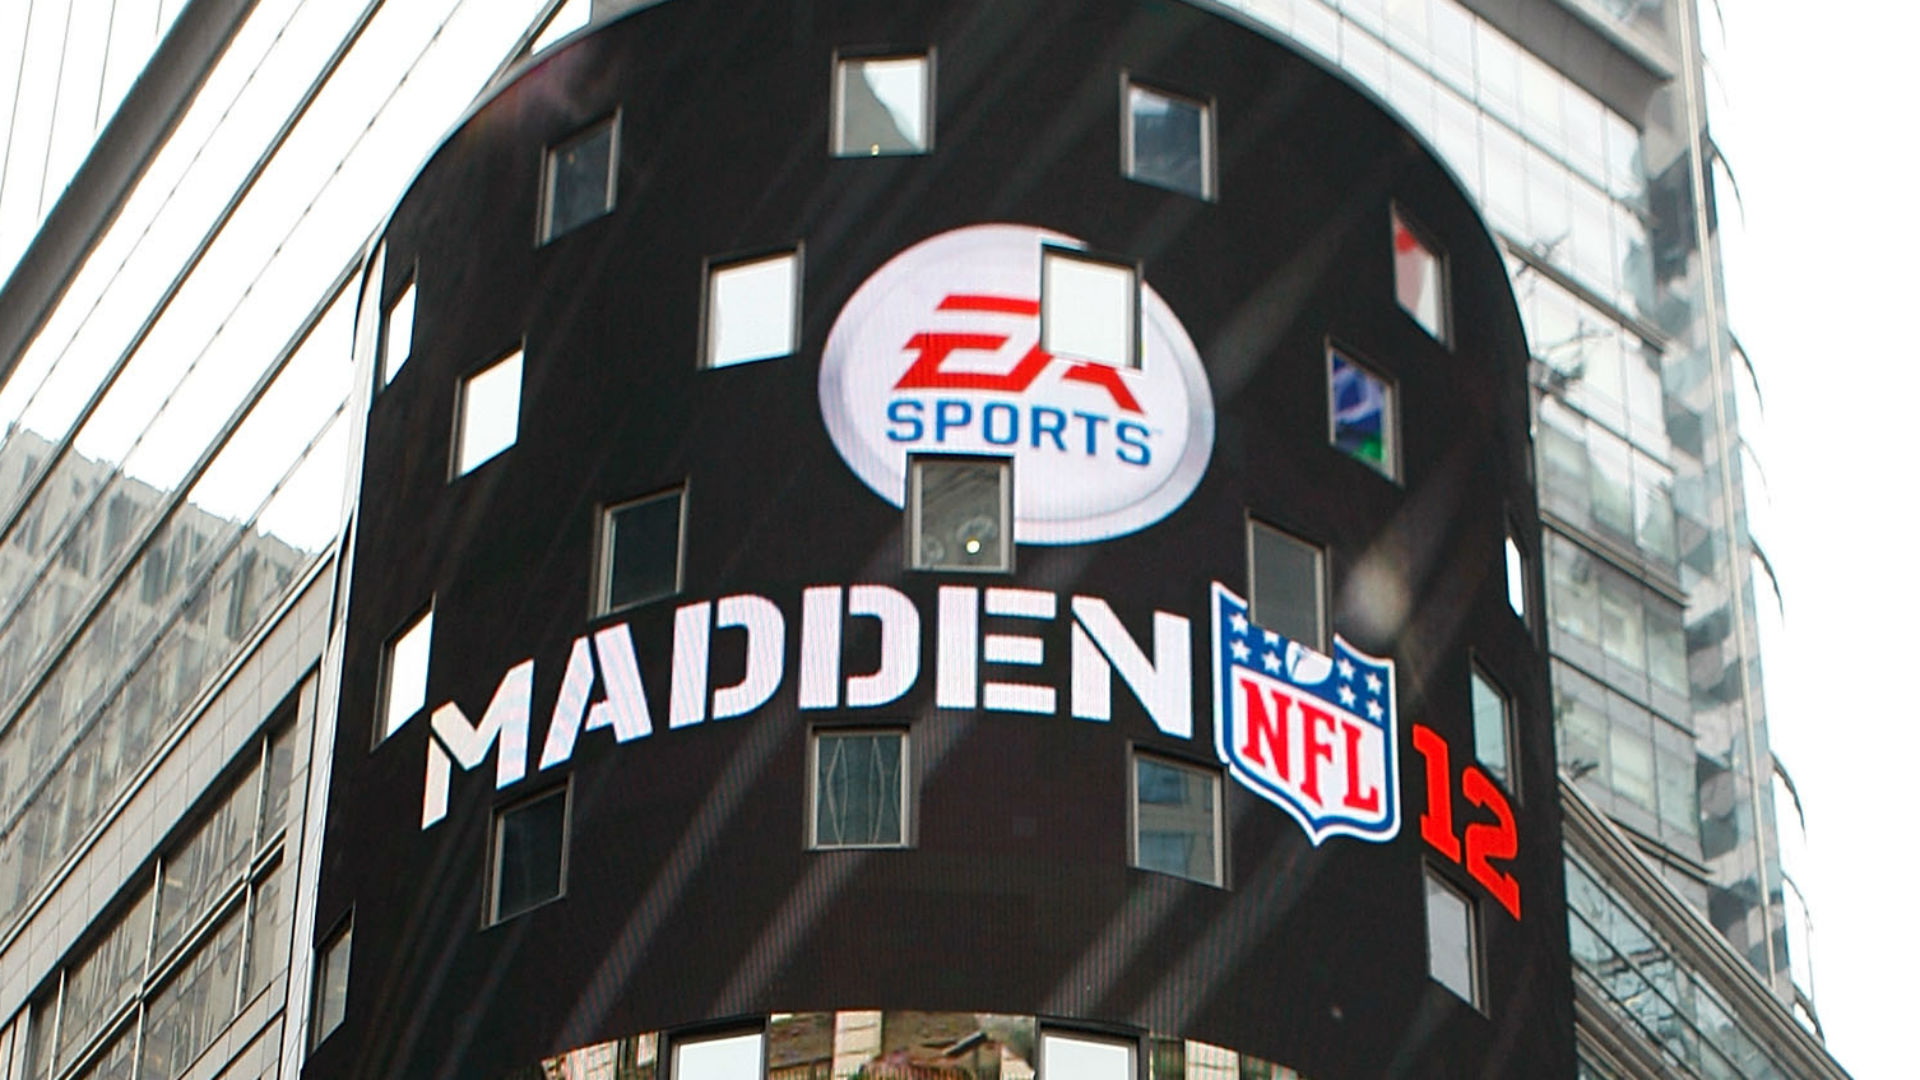 Remainder of Madden Classic qualifiers canceled after Jacksonville shooting